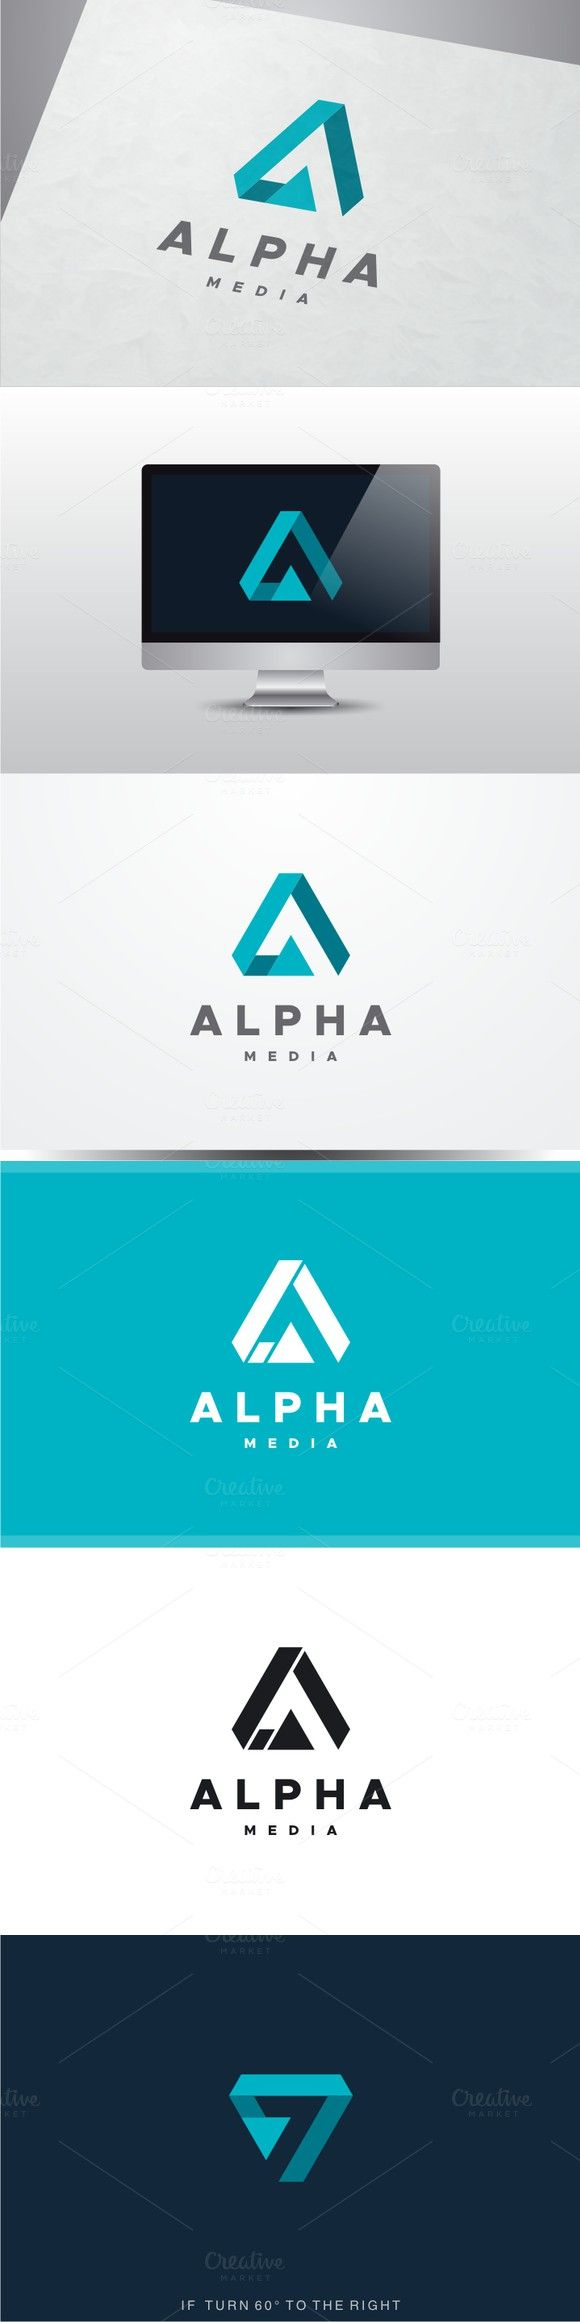 Alpha Media - Letter A Logo. Technology icons. $30.00